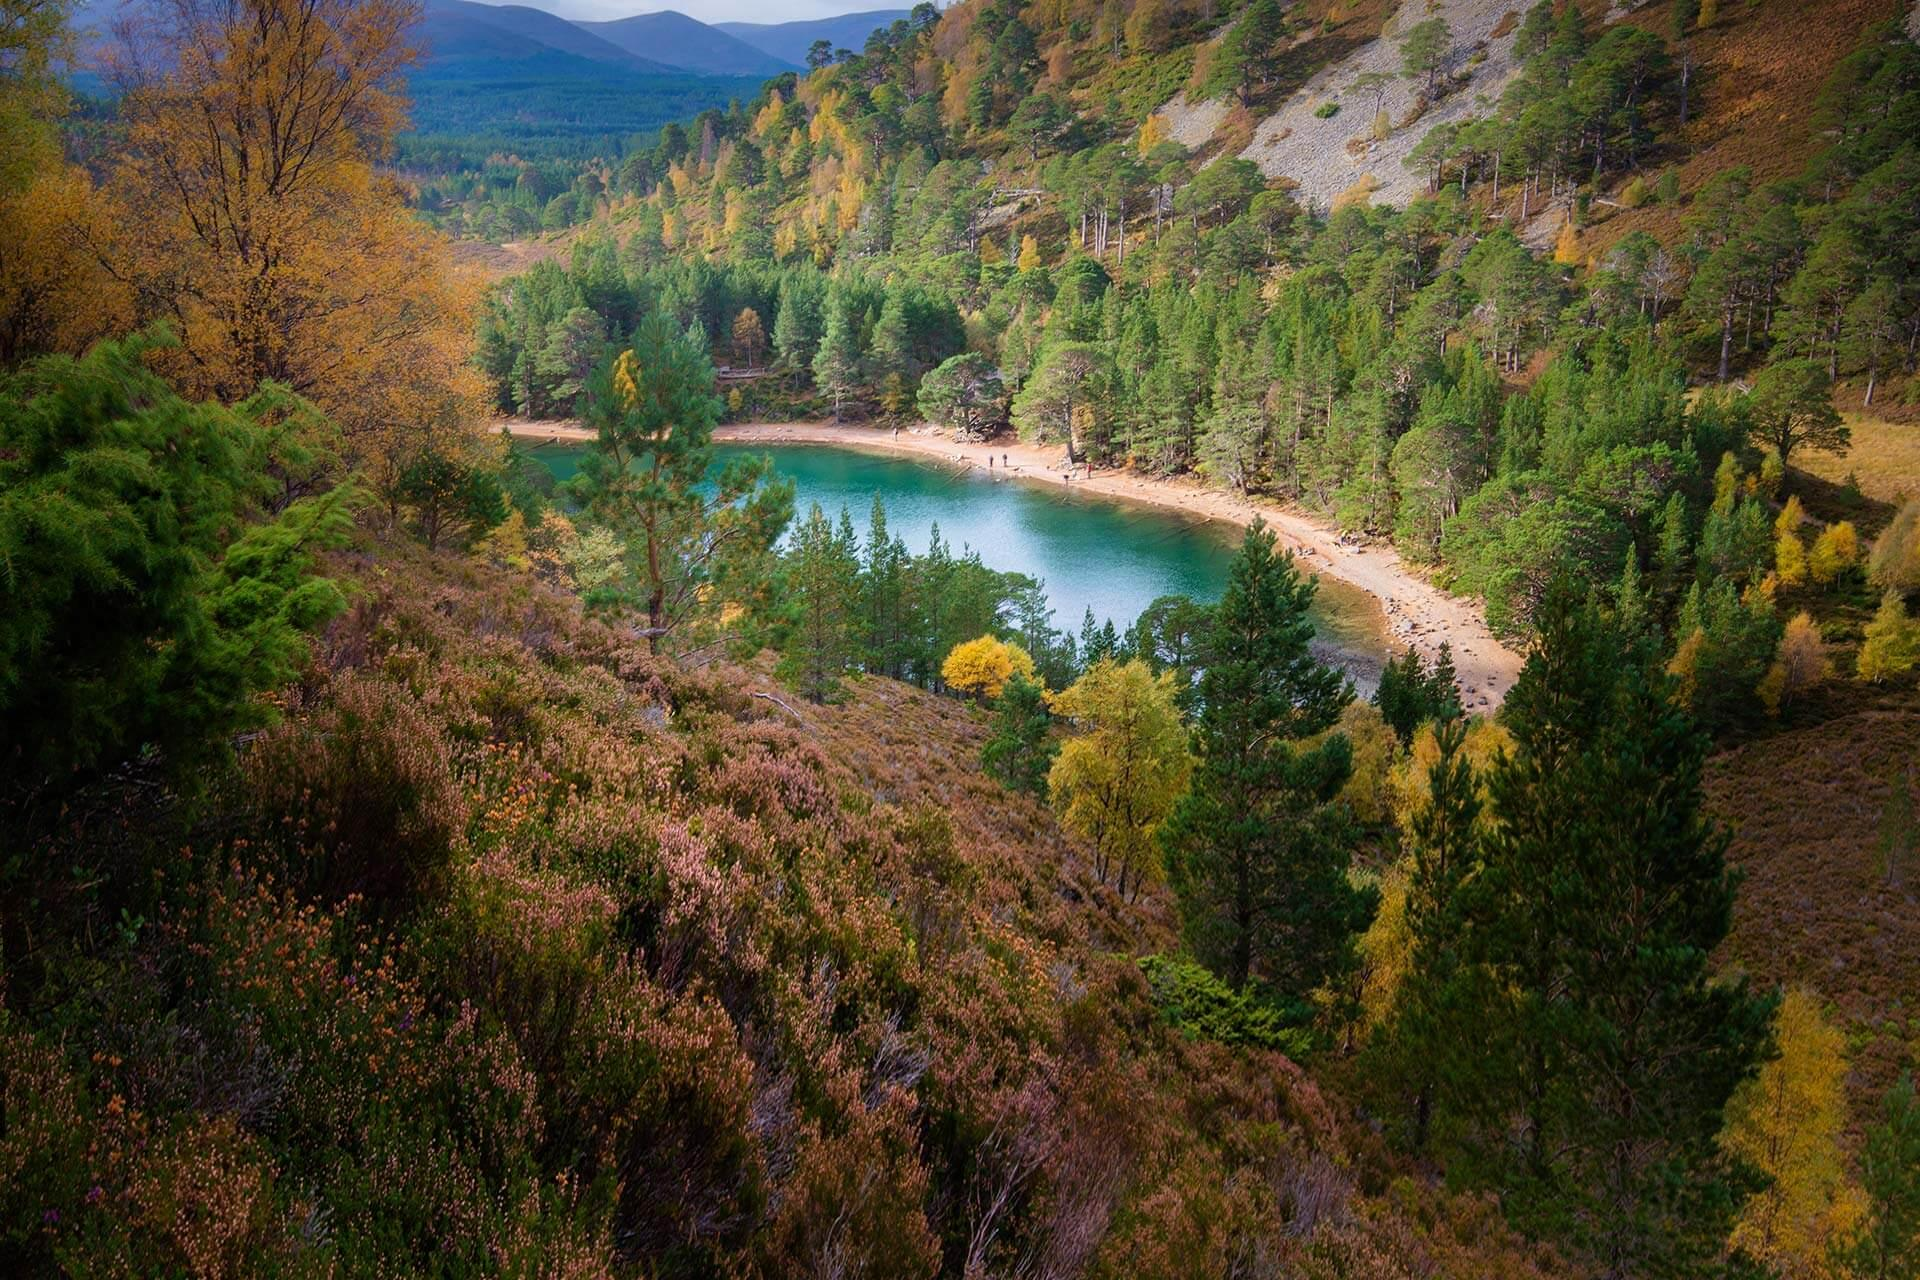 Scottish Landscapes, Scenery & Natural Attractions | VisitScotland